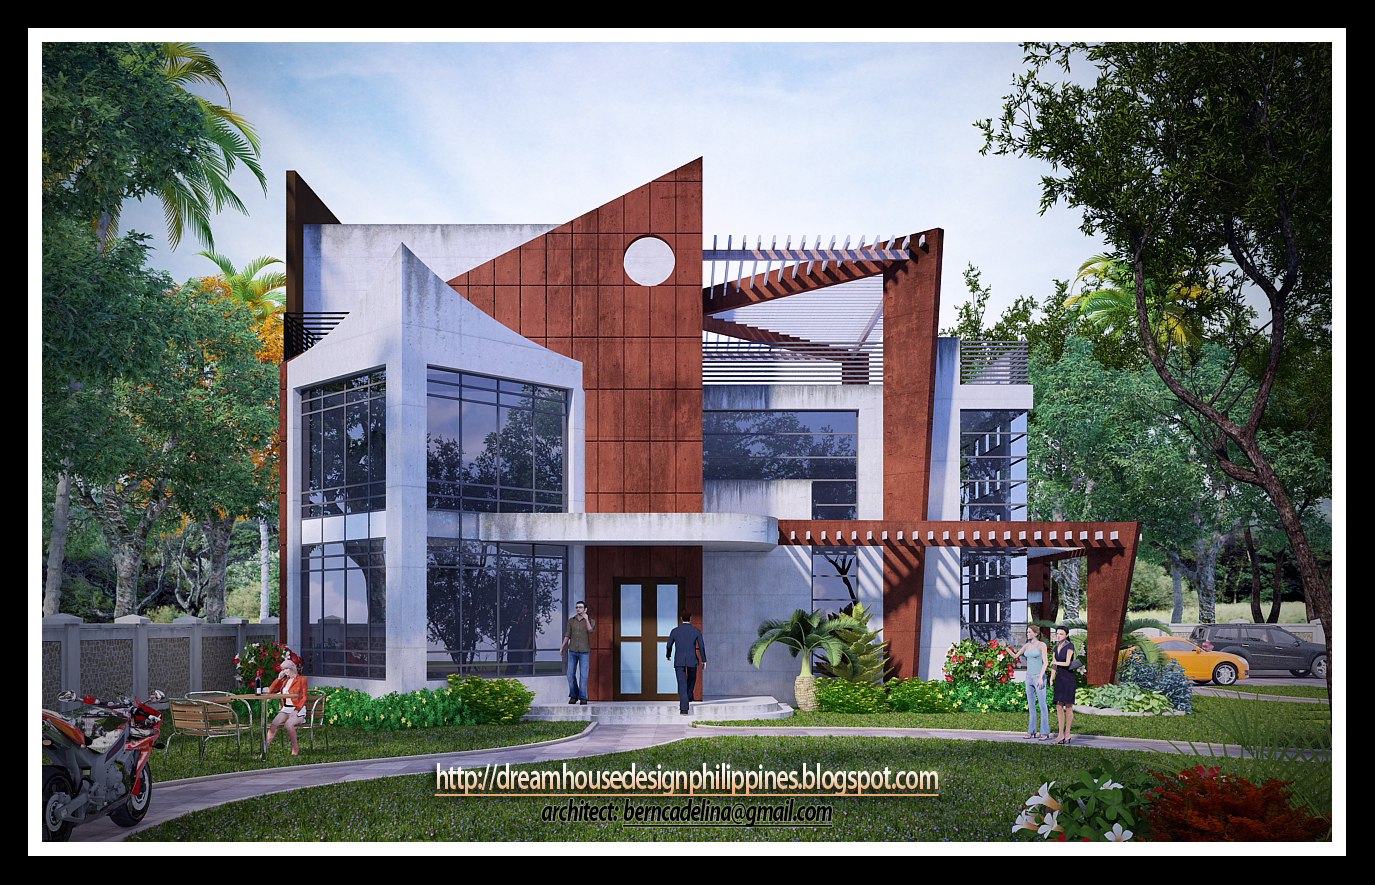 Dream House Design Philippines: Modern House